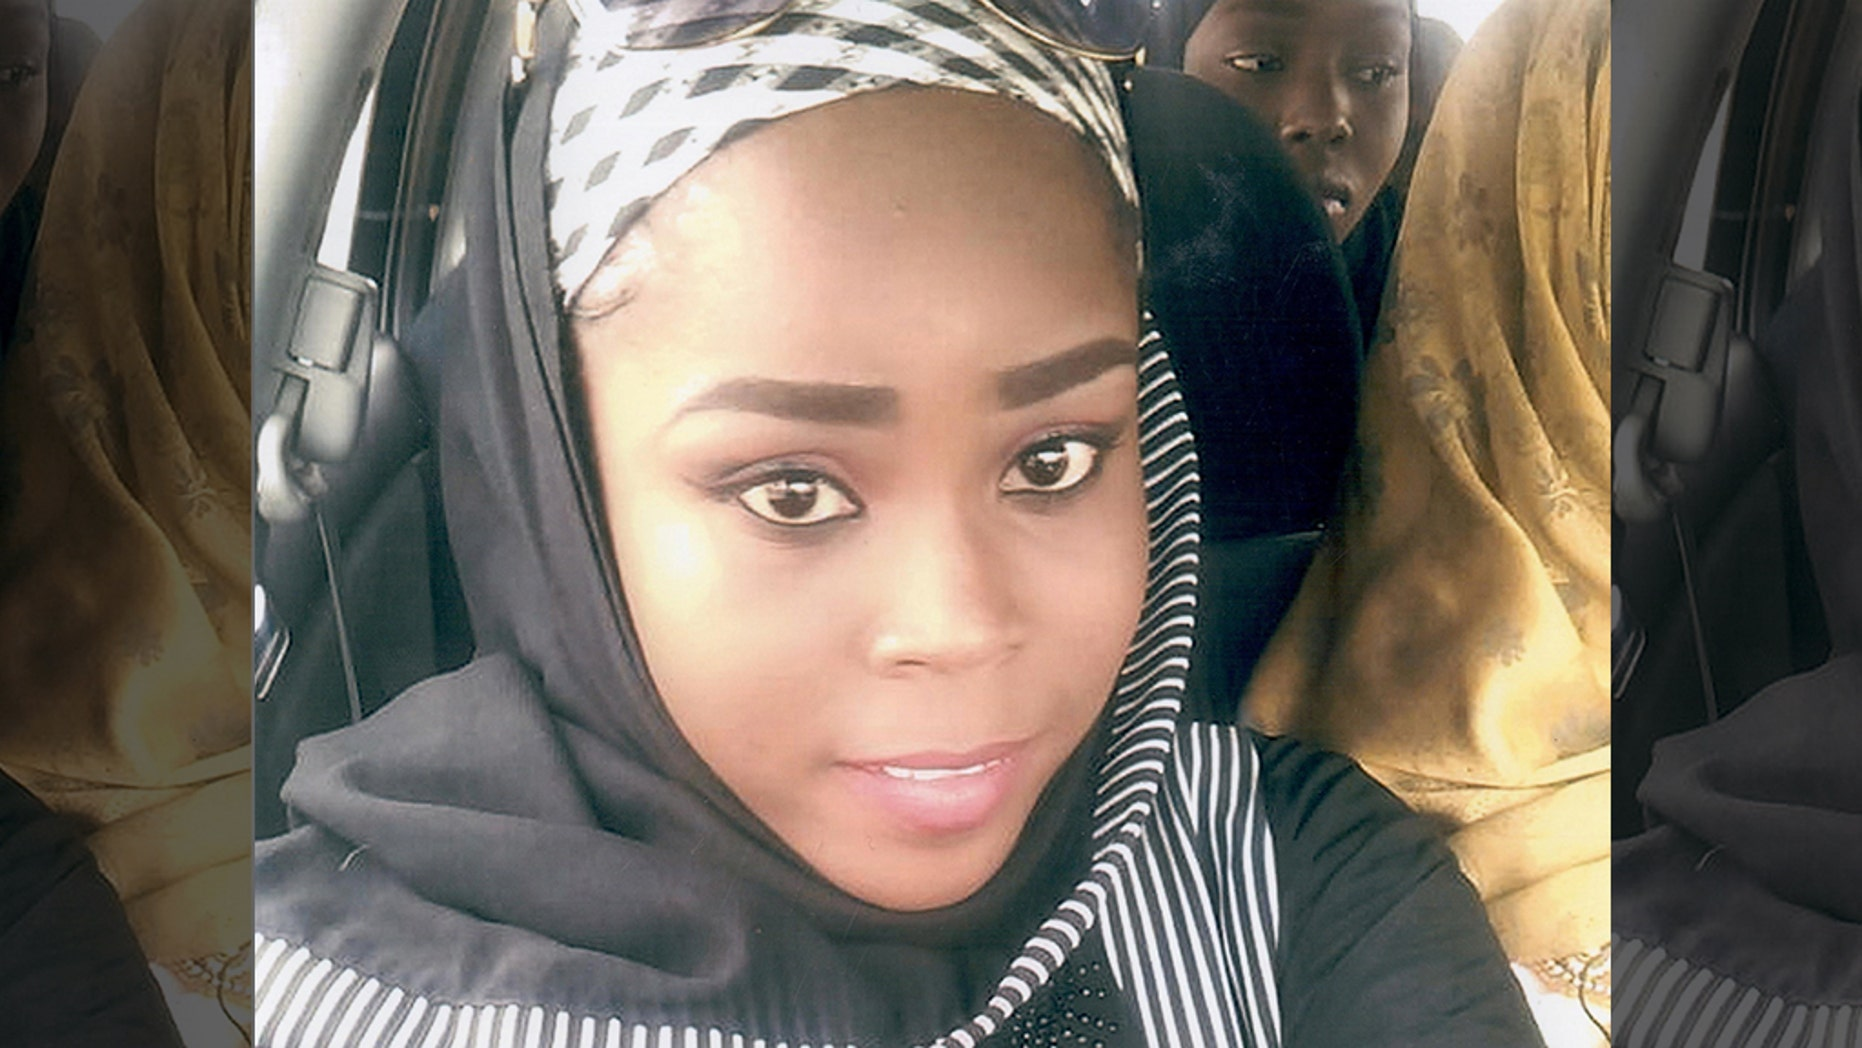 Red Cross confirms execution of Hauwa Liman